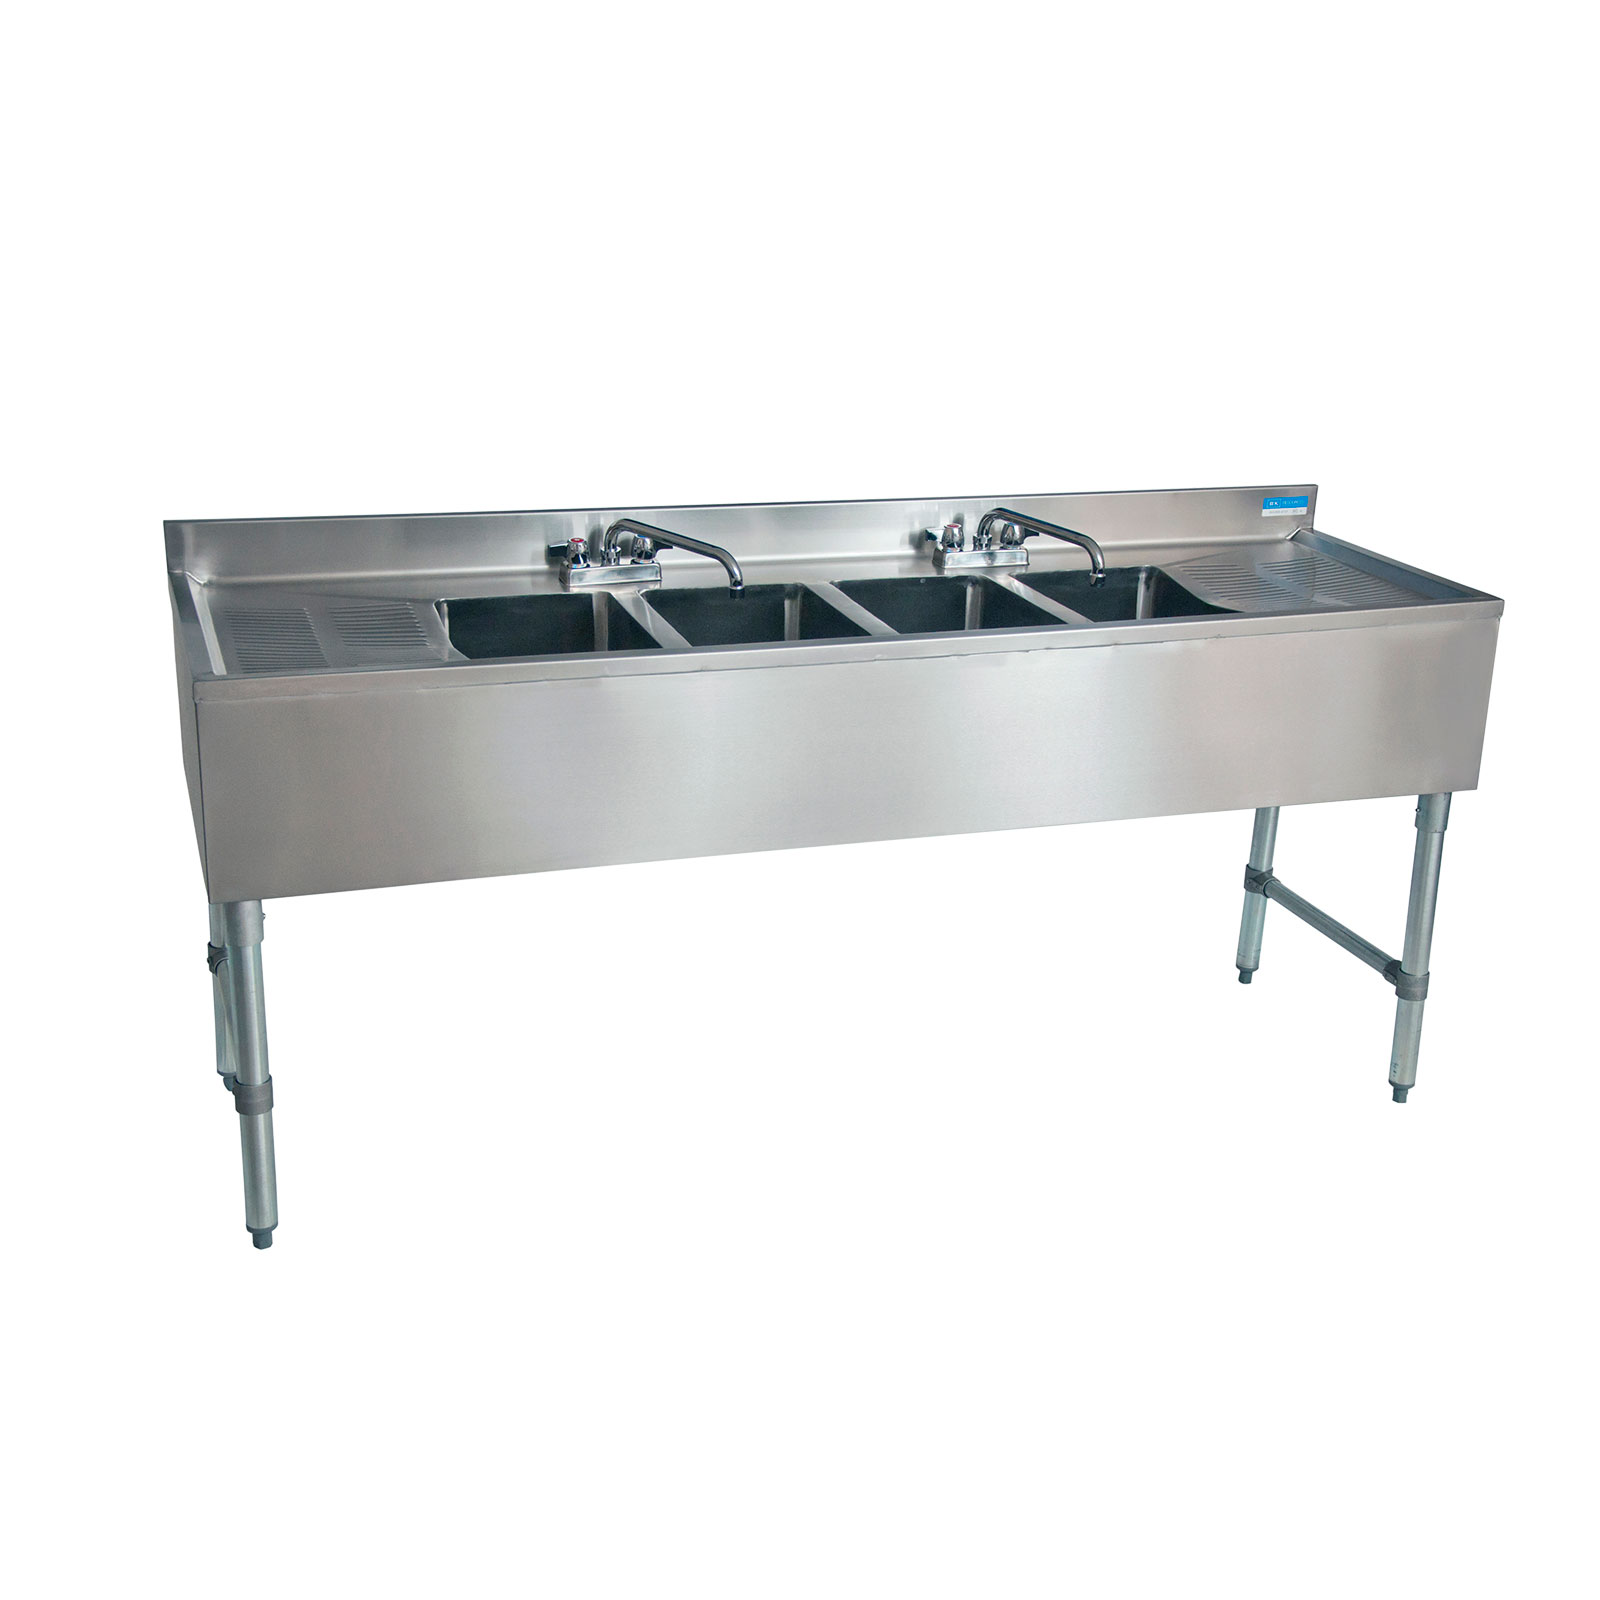 BK Resources BKUBS-484TS underbar sink units